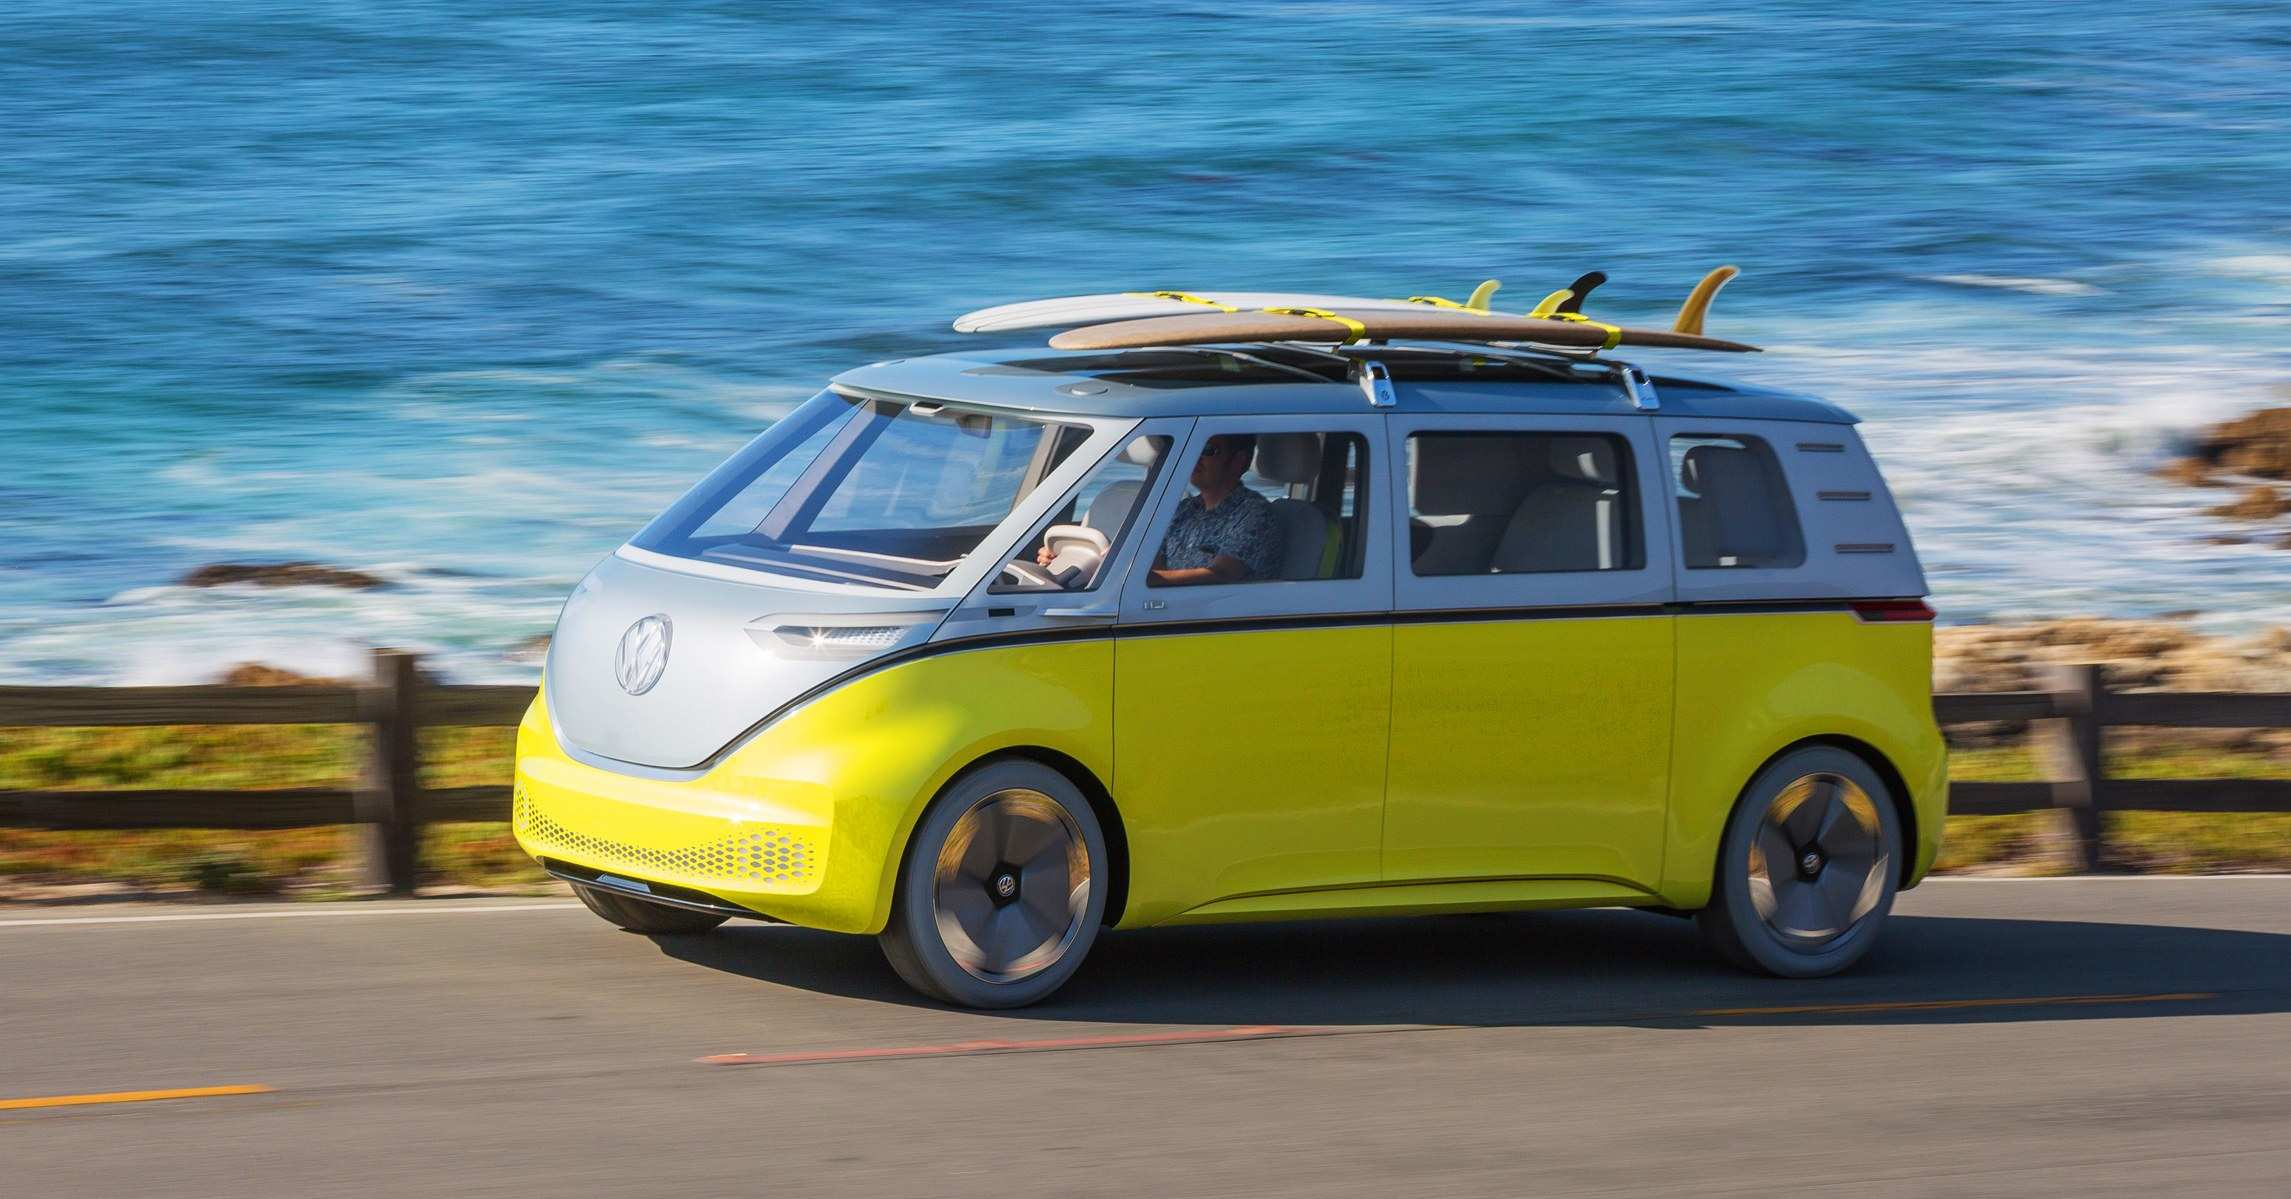 32 All New 2020 Vw Bus Ratings by 2020 Vw Bus